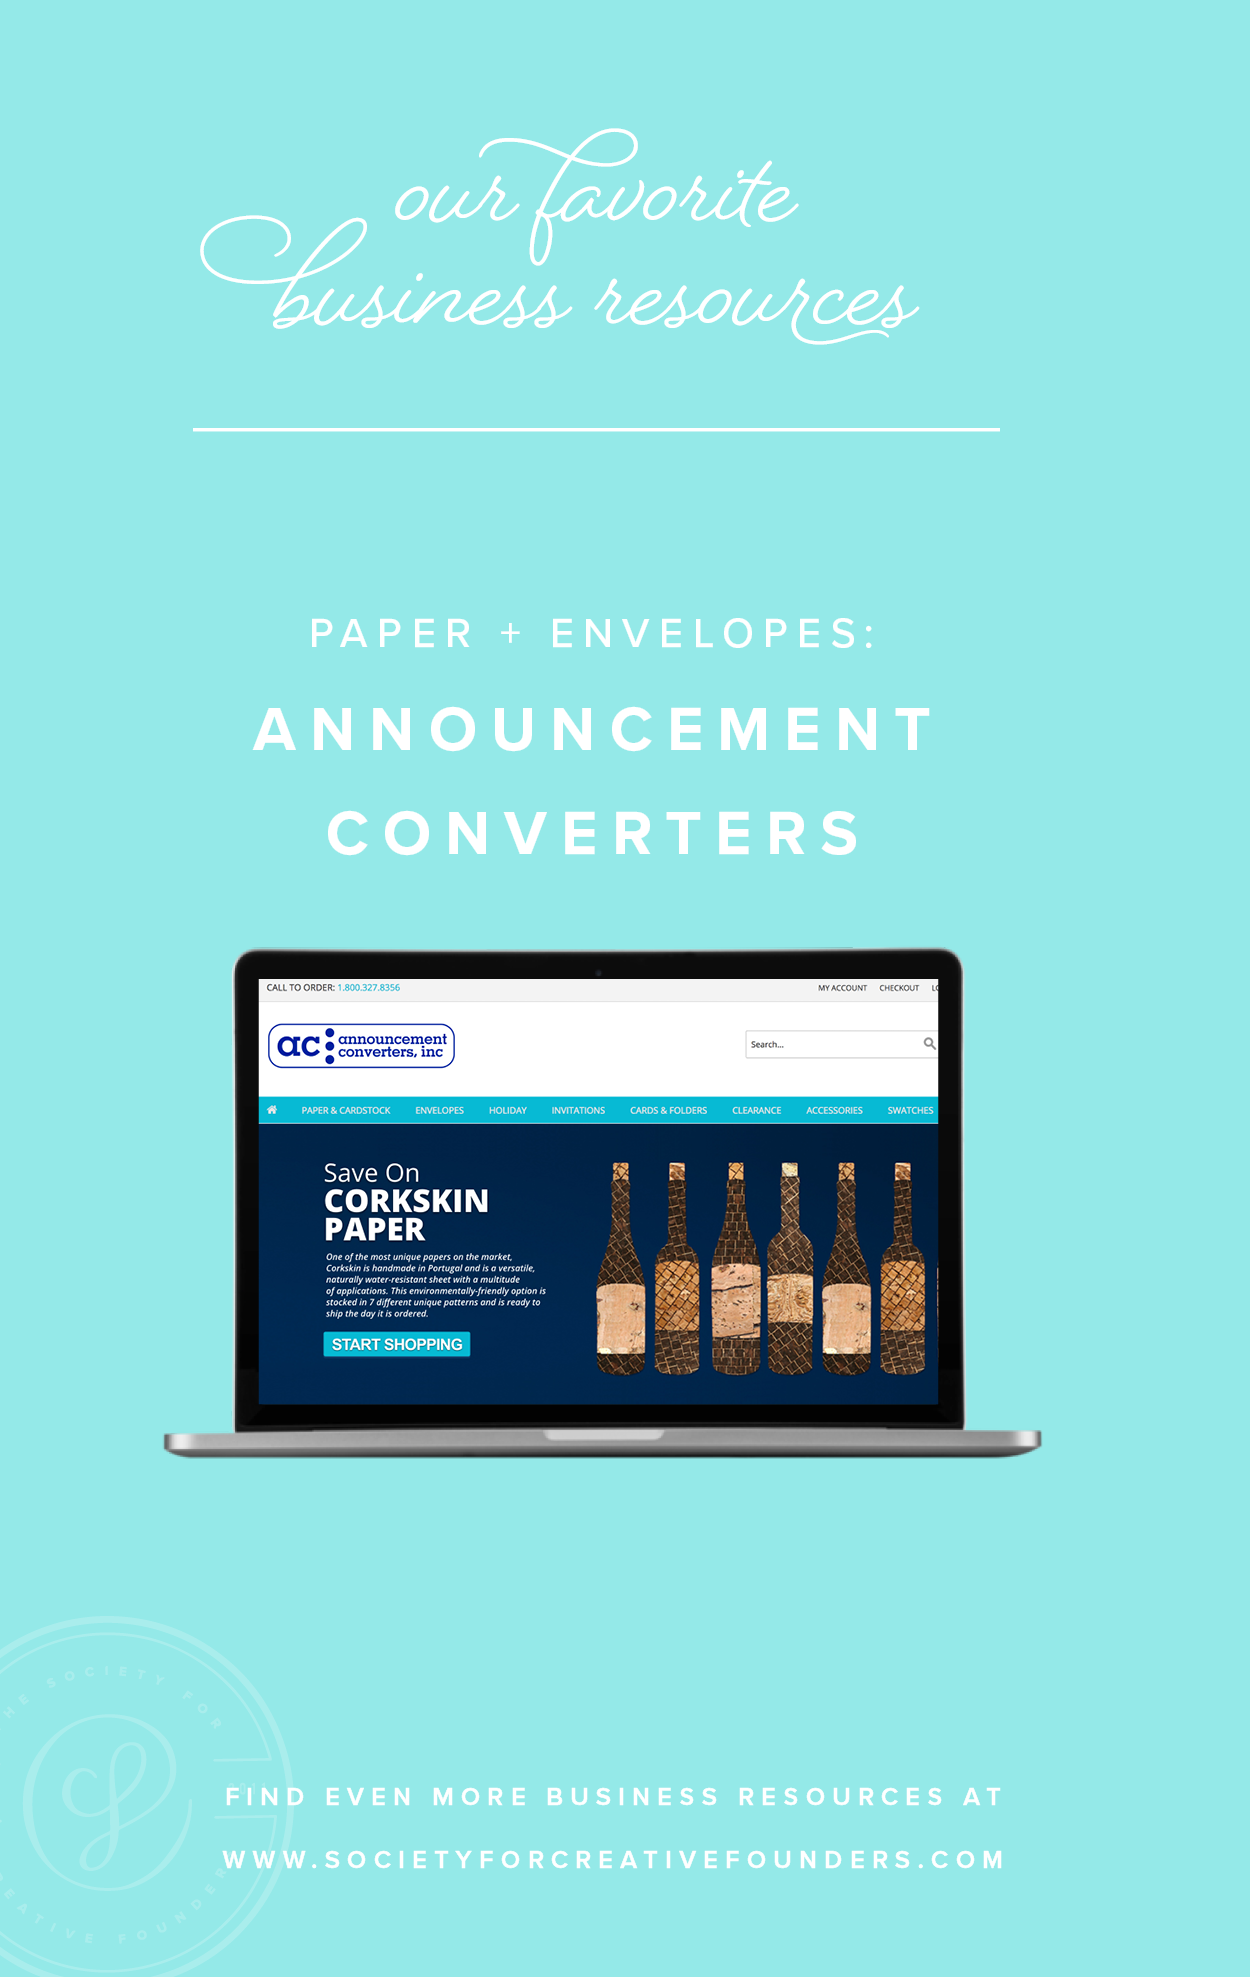 Announcement Converters - Favorite Business Resources from Society for Creative Founders